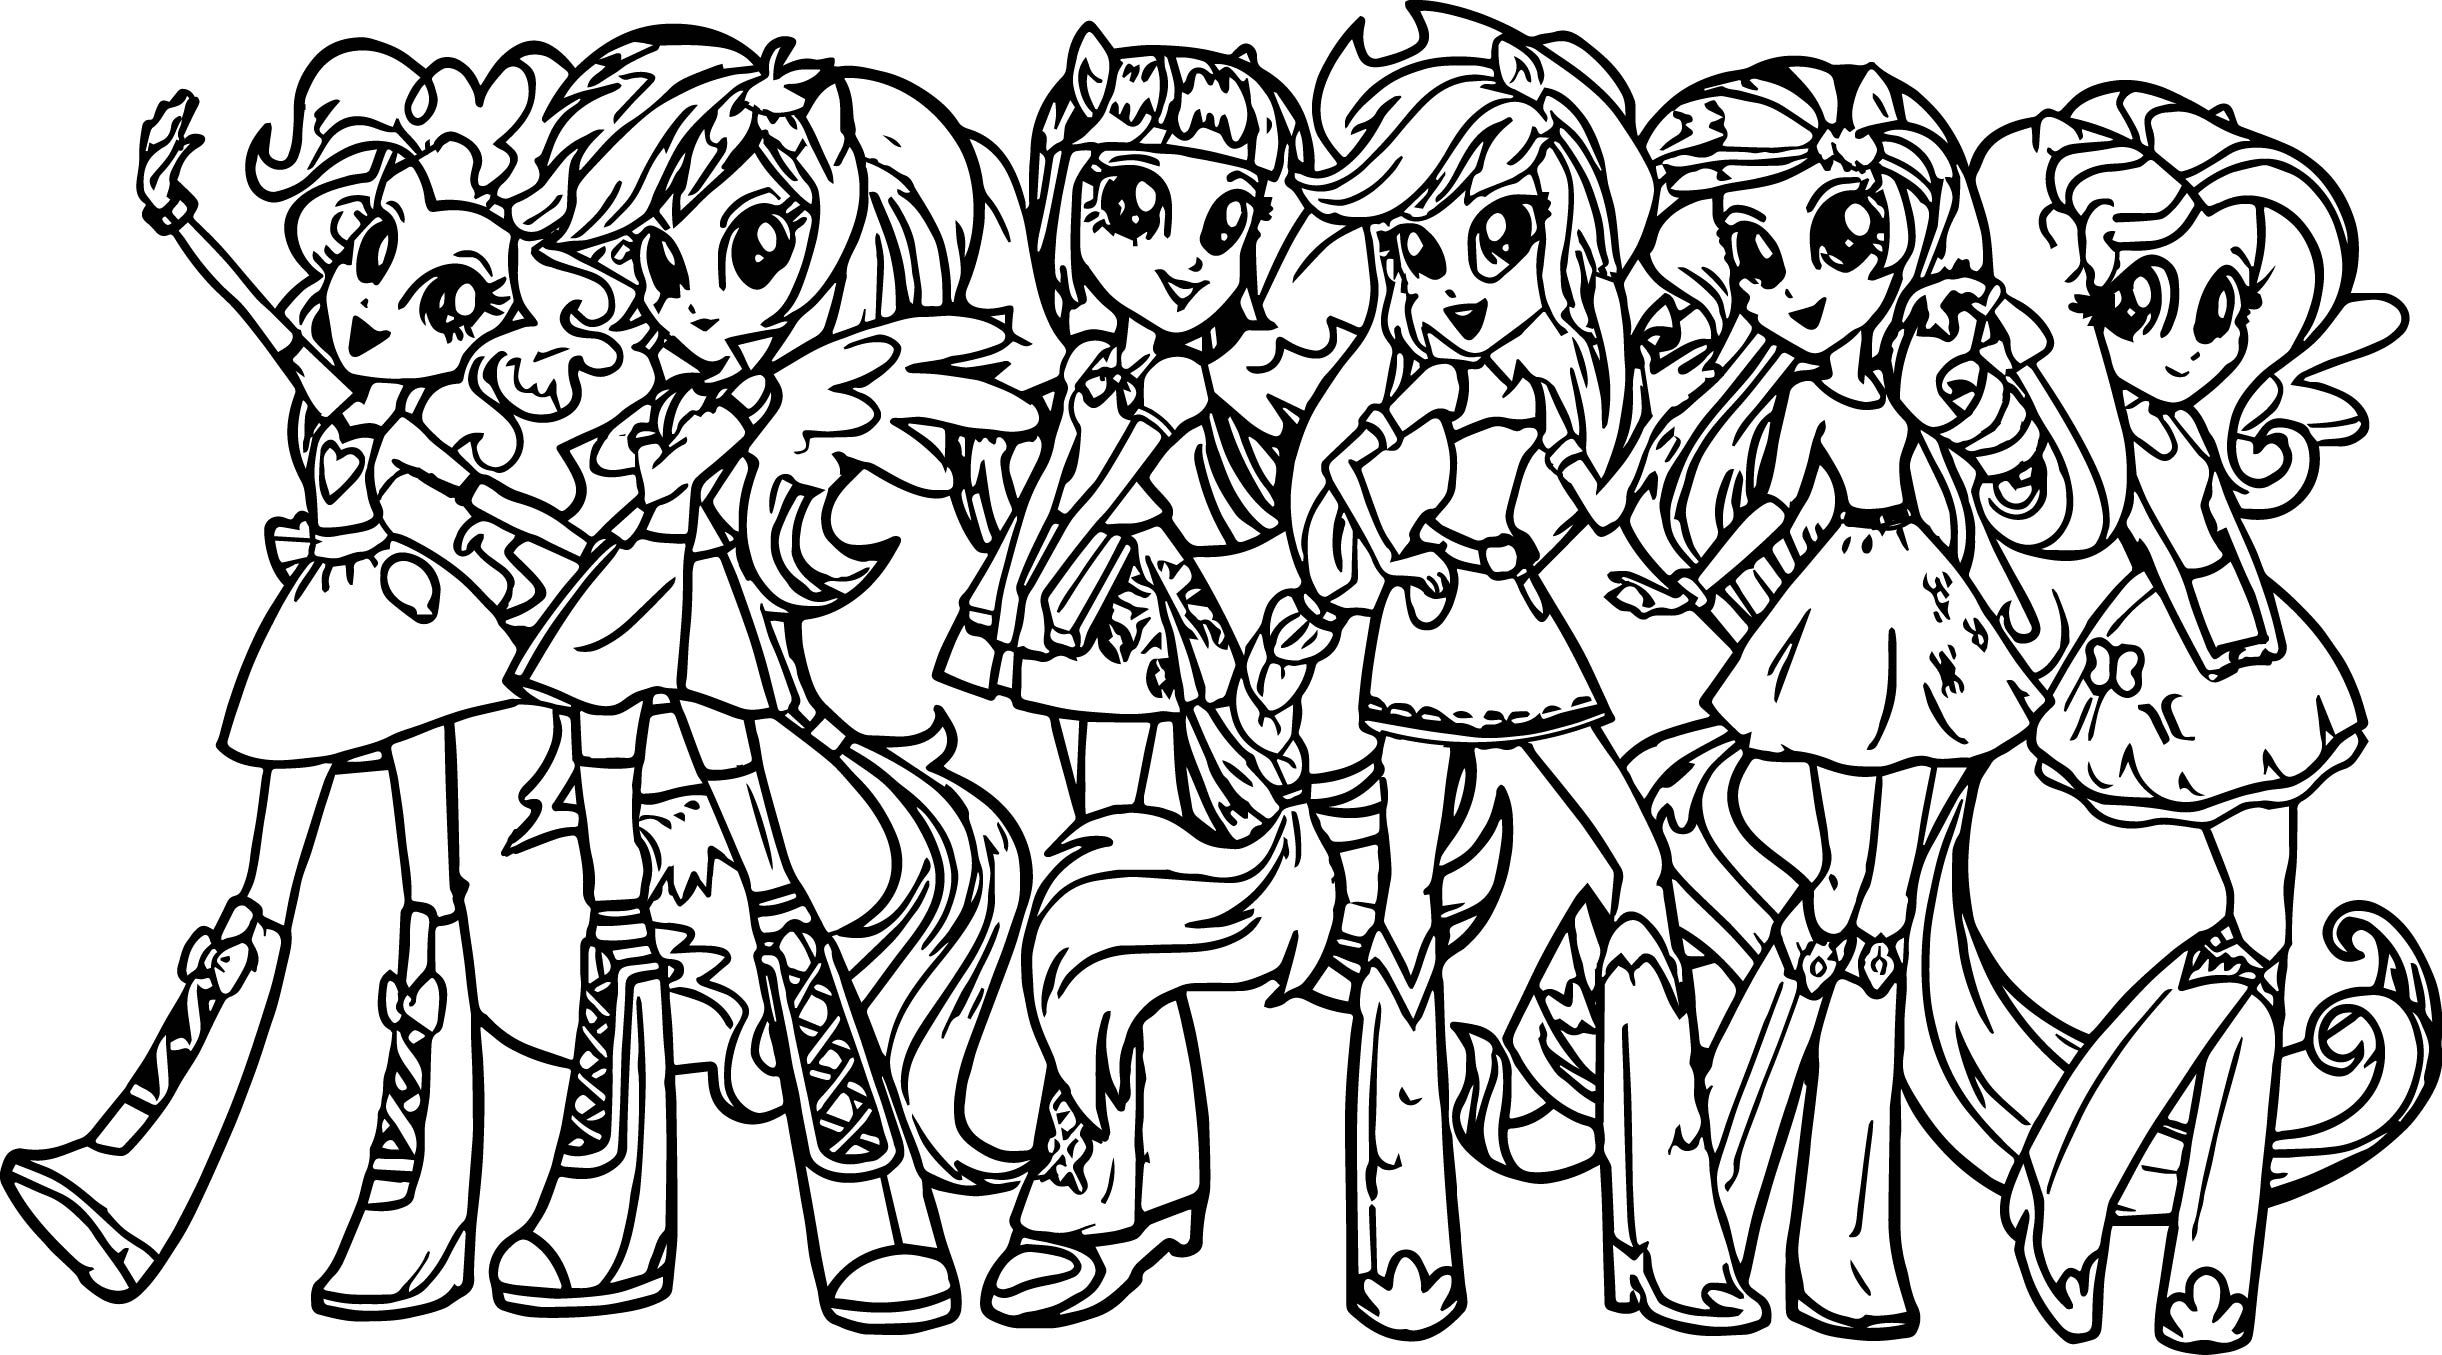 my little pony coloring sheets to print pinkie pie coloring pages best coloring pages for kids pony sheets my coloring to little print